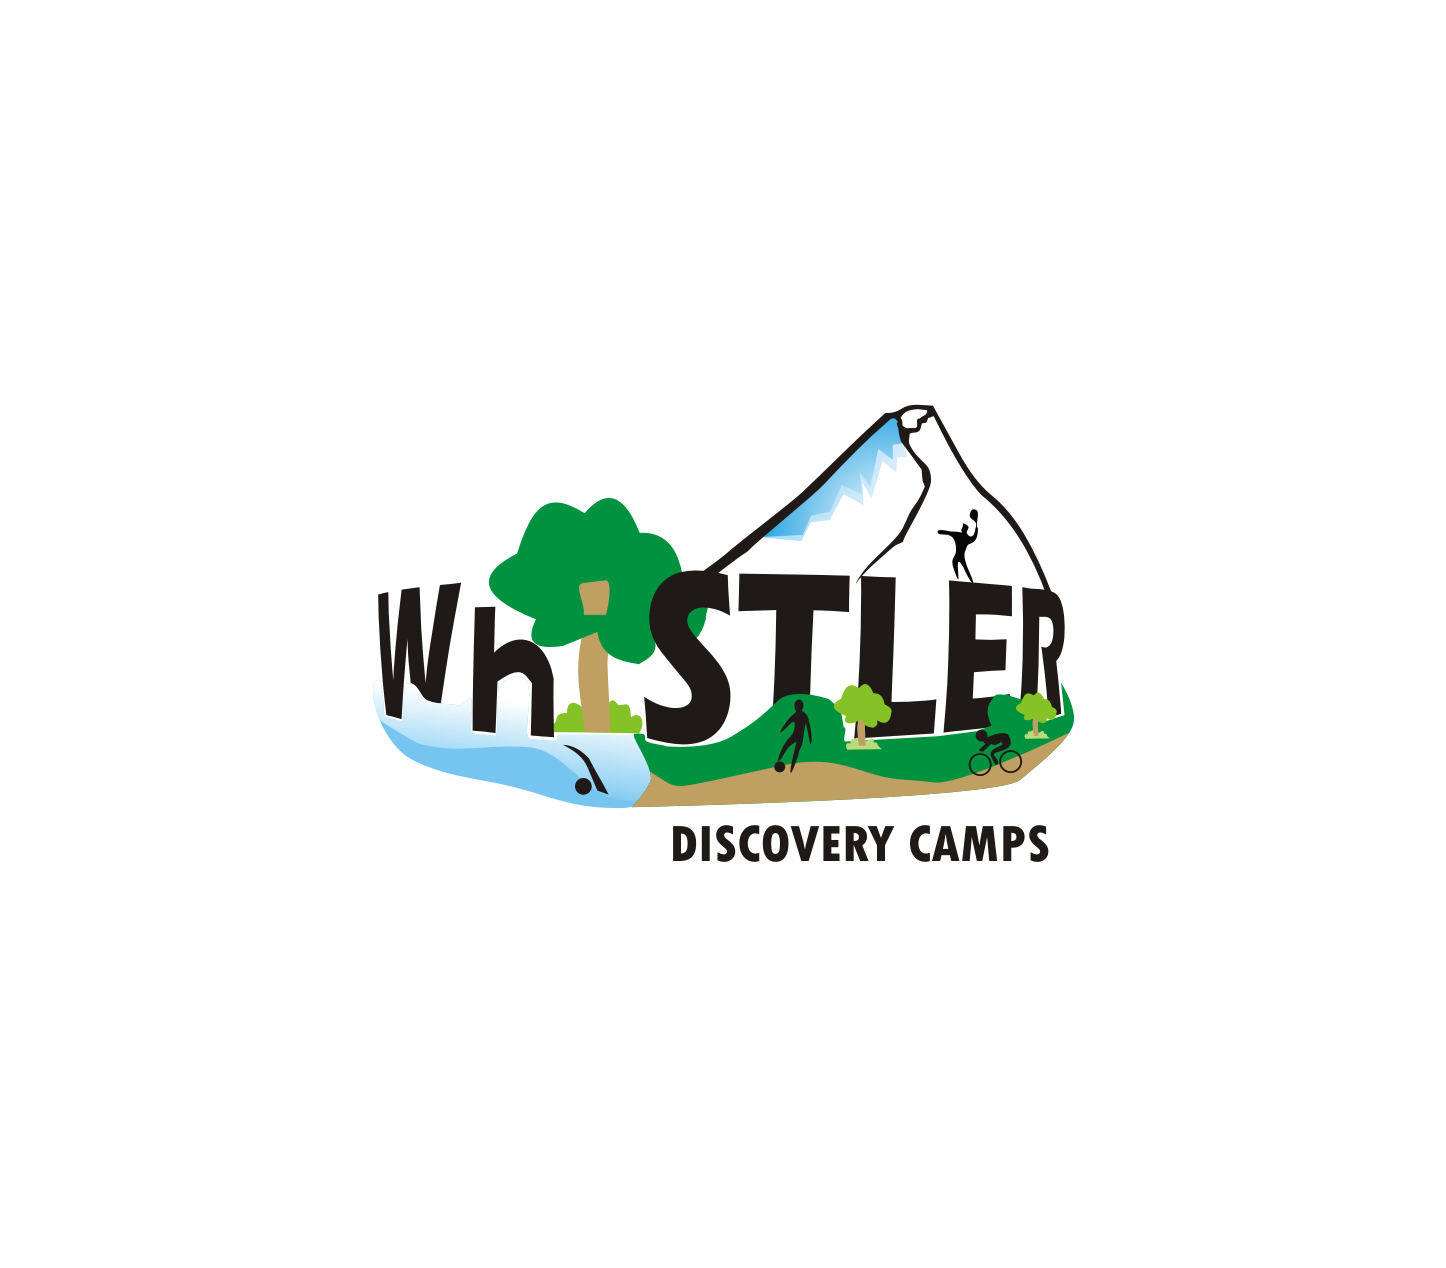 Logo Design by Nthus Nthis - Entry No. 32 in the Logo Design Contest Captivating Logo Design for Whistler Discovery Camps.